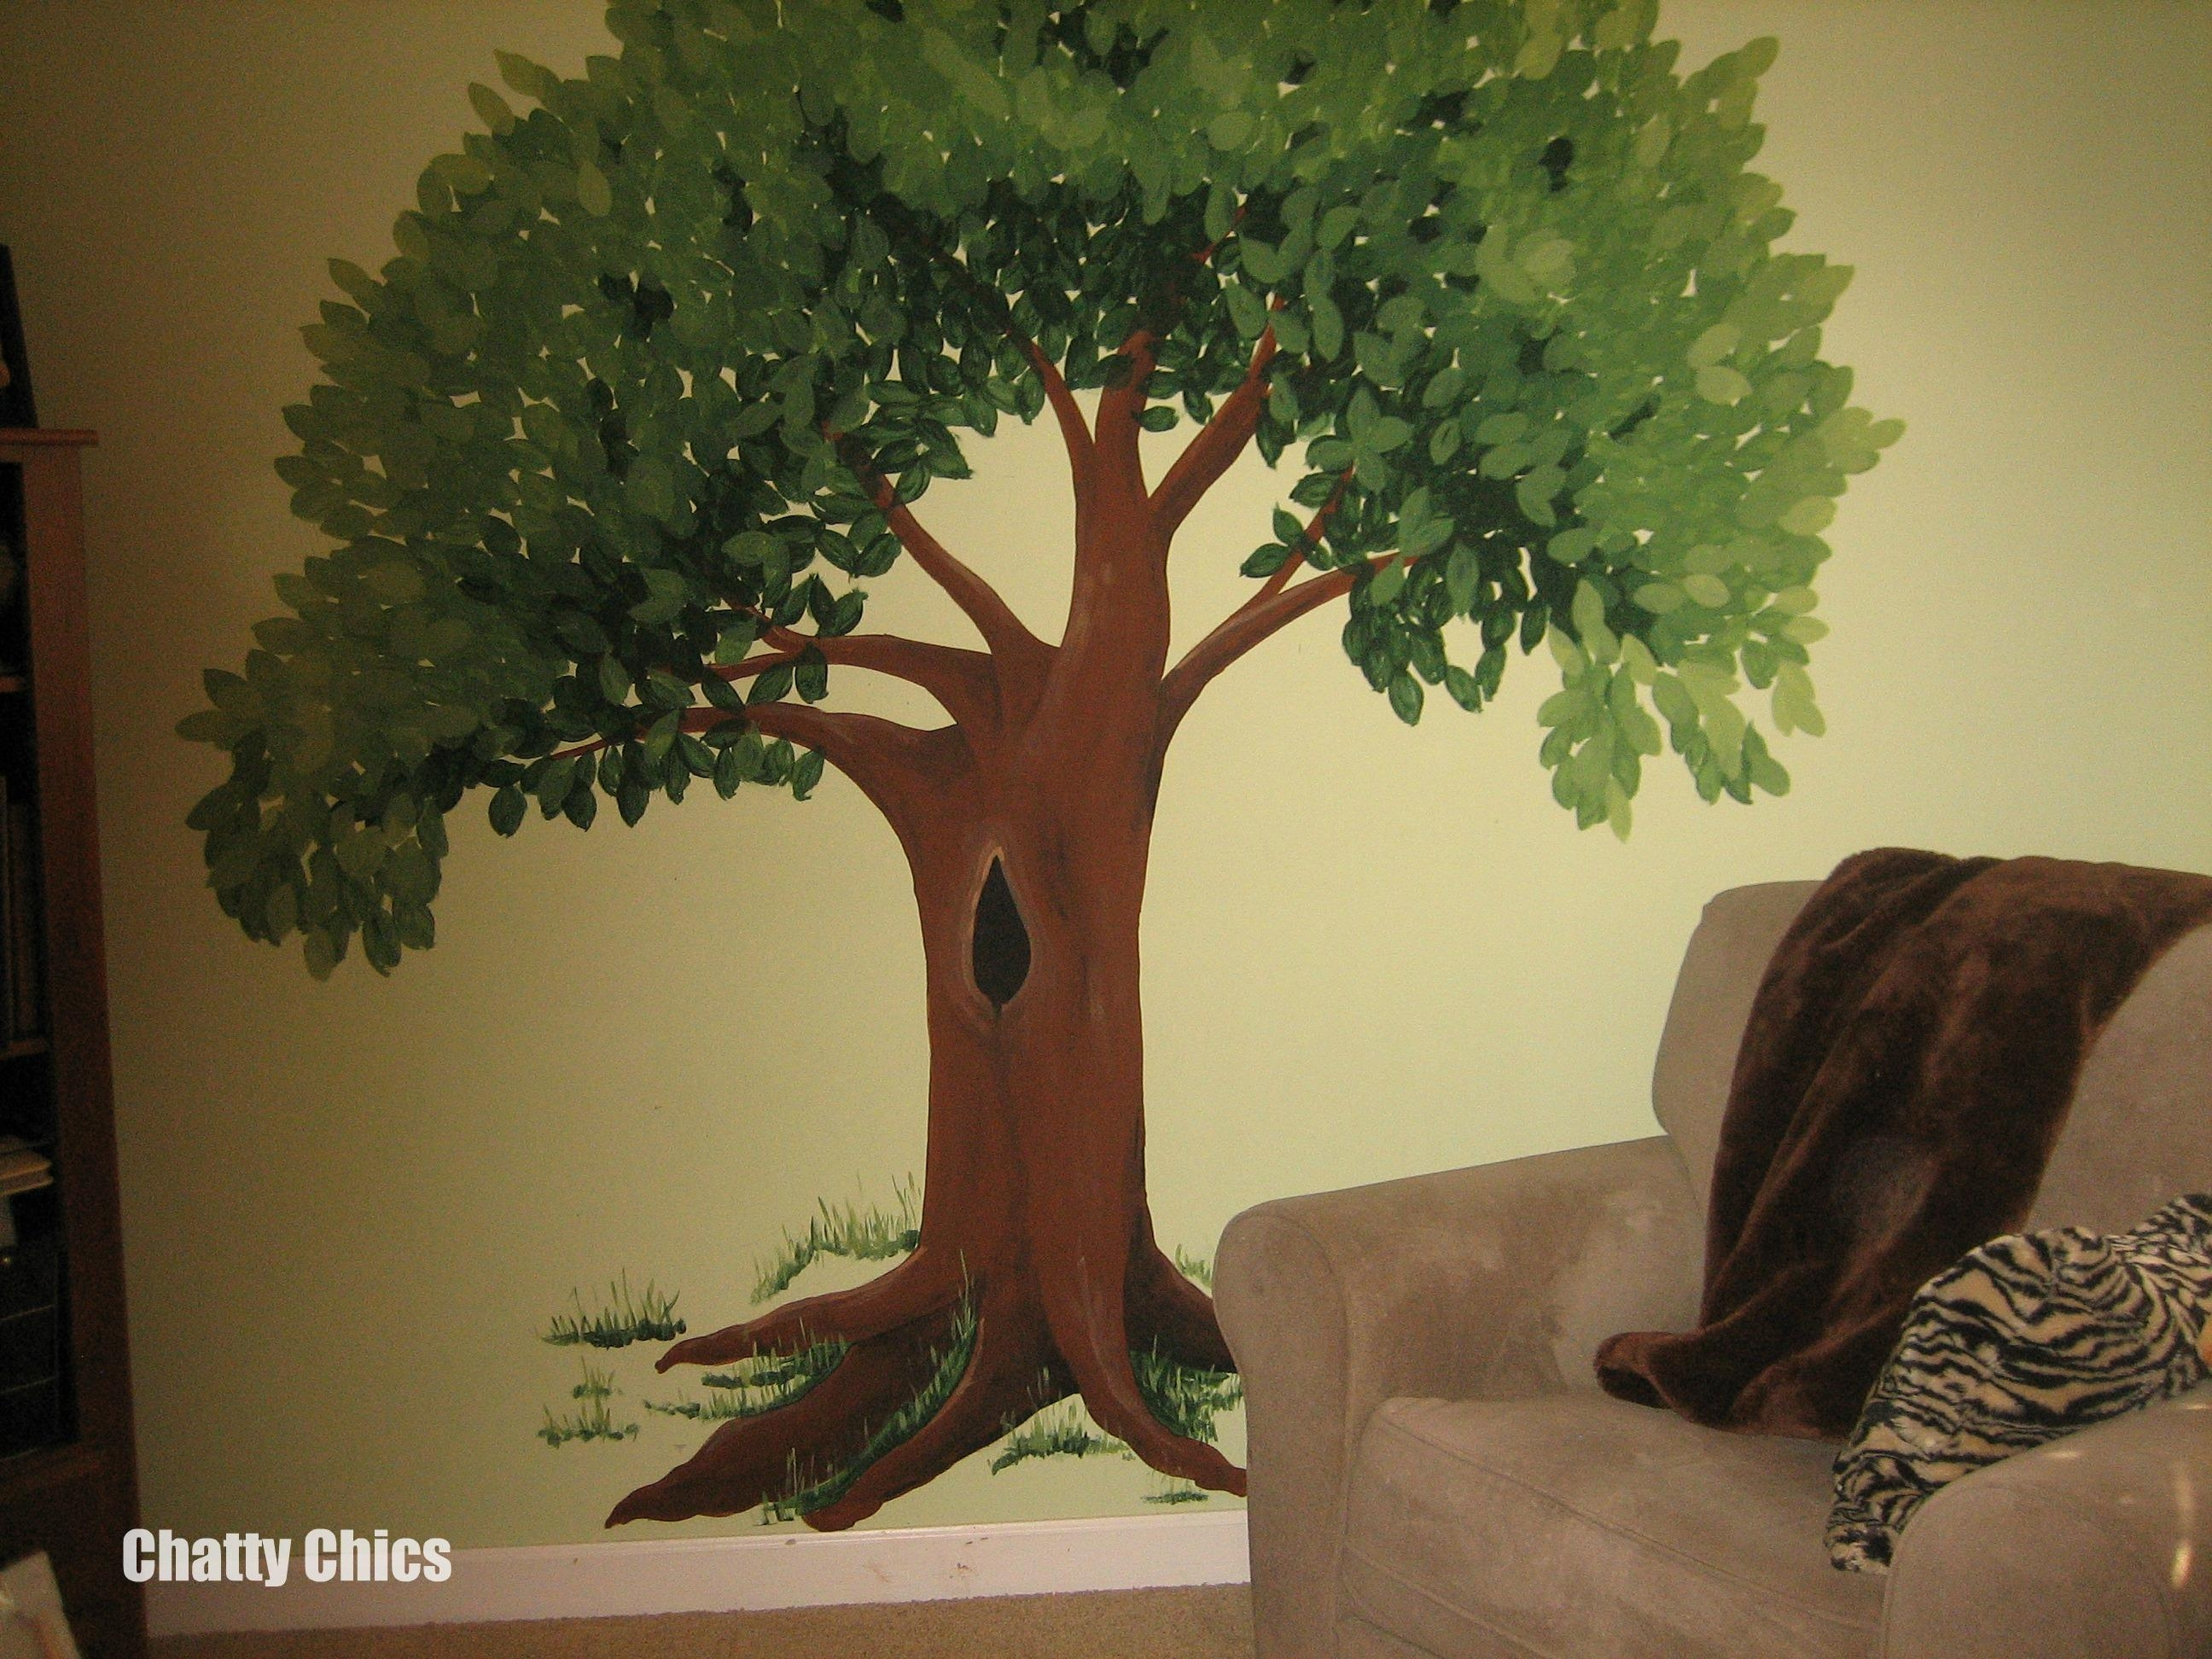 Wall Art | Chatty Chics Inside Painted Trees Wall Art (Image 18 of 20)